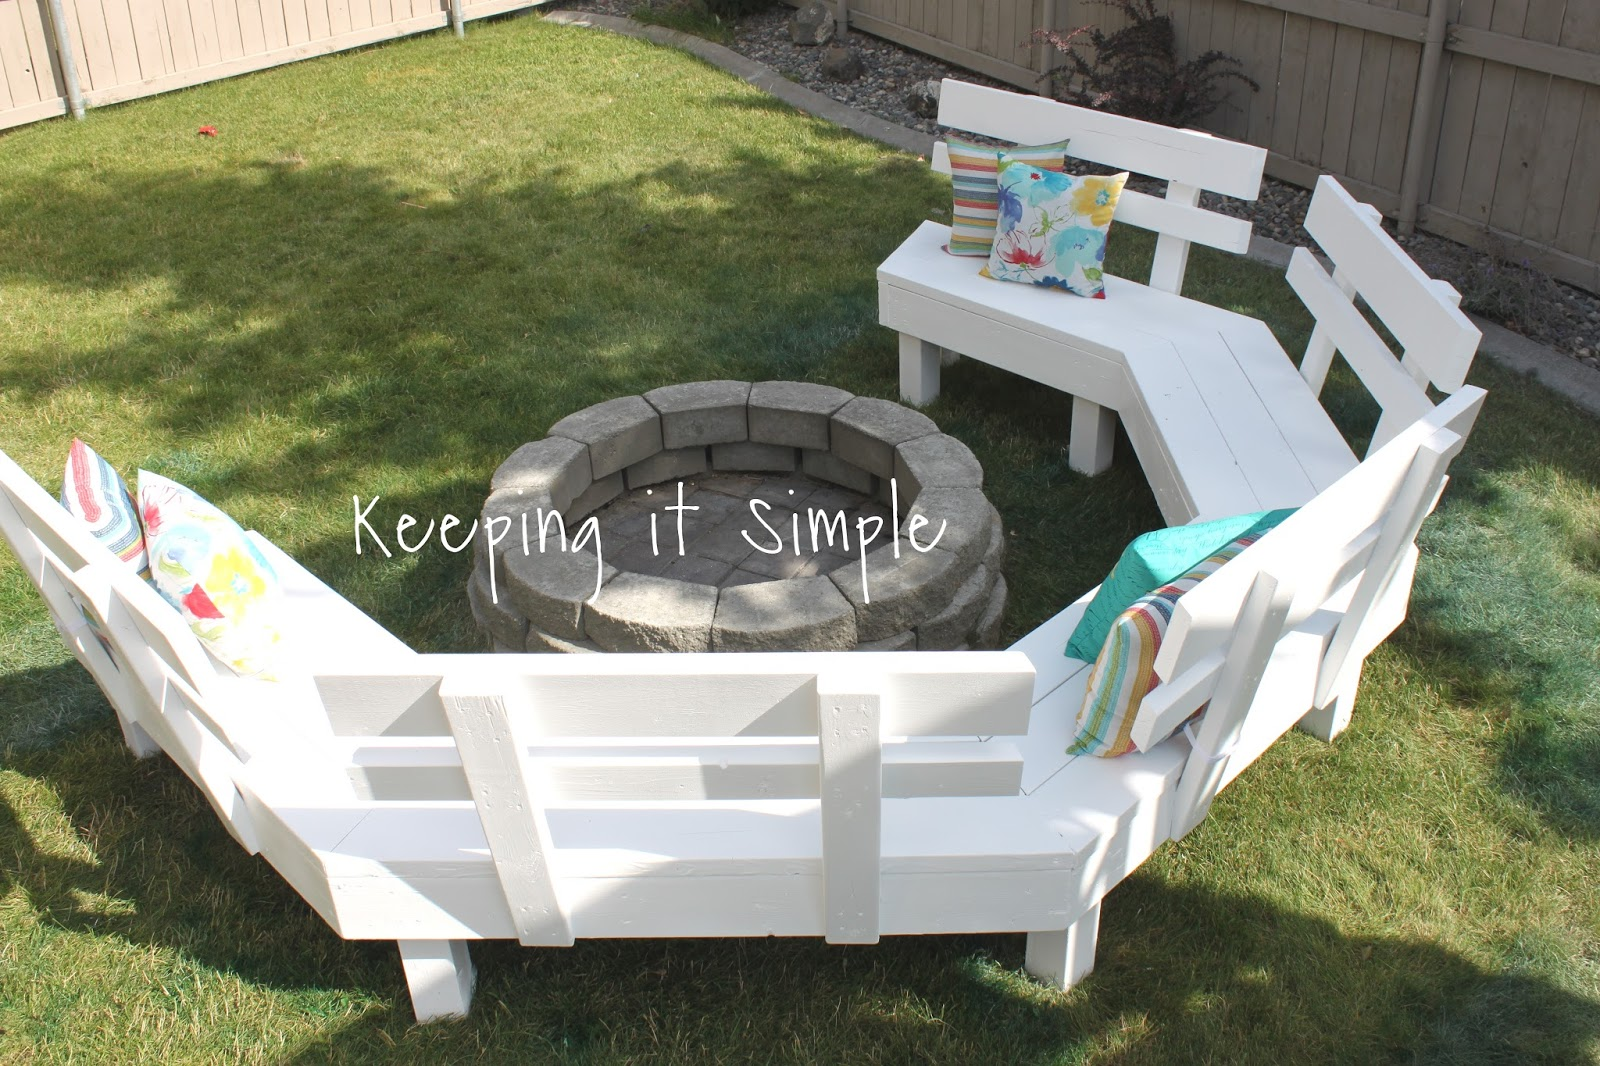 Keeping it simple diy fire pit sofa bench with step by step insructions Fire pit benches